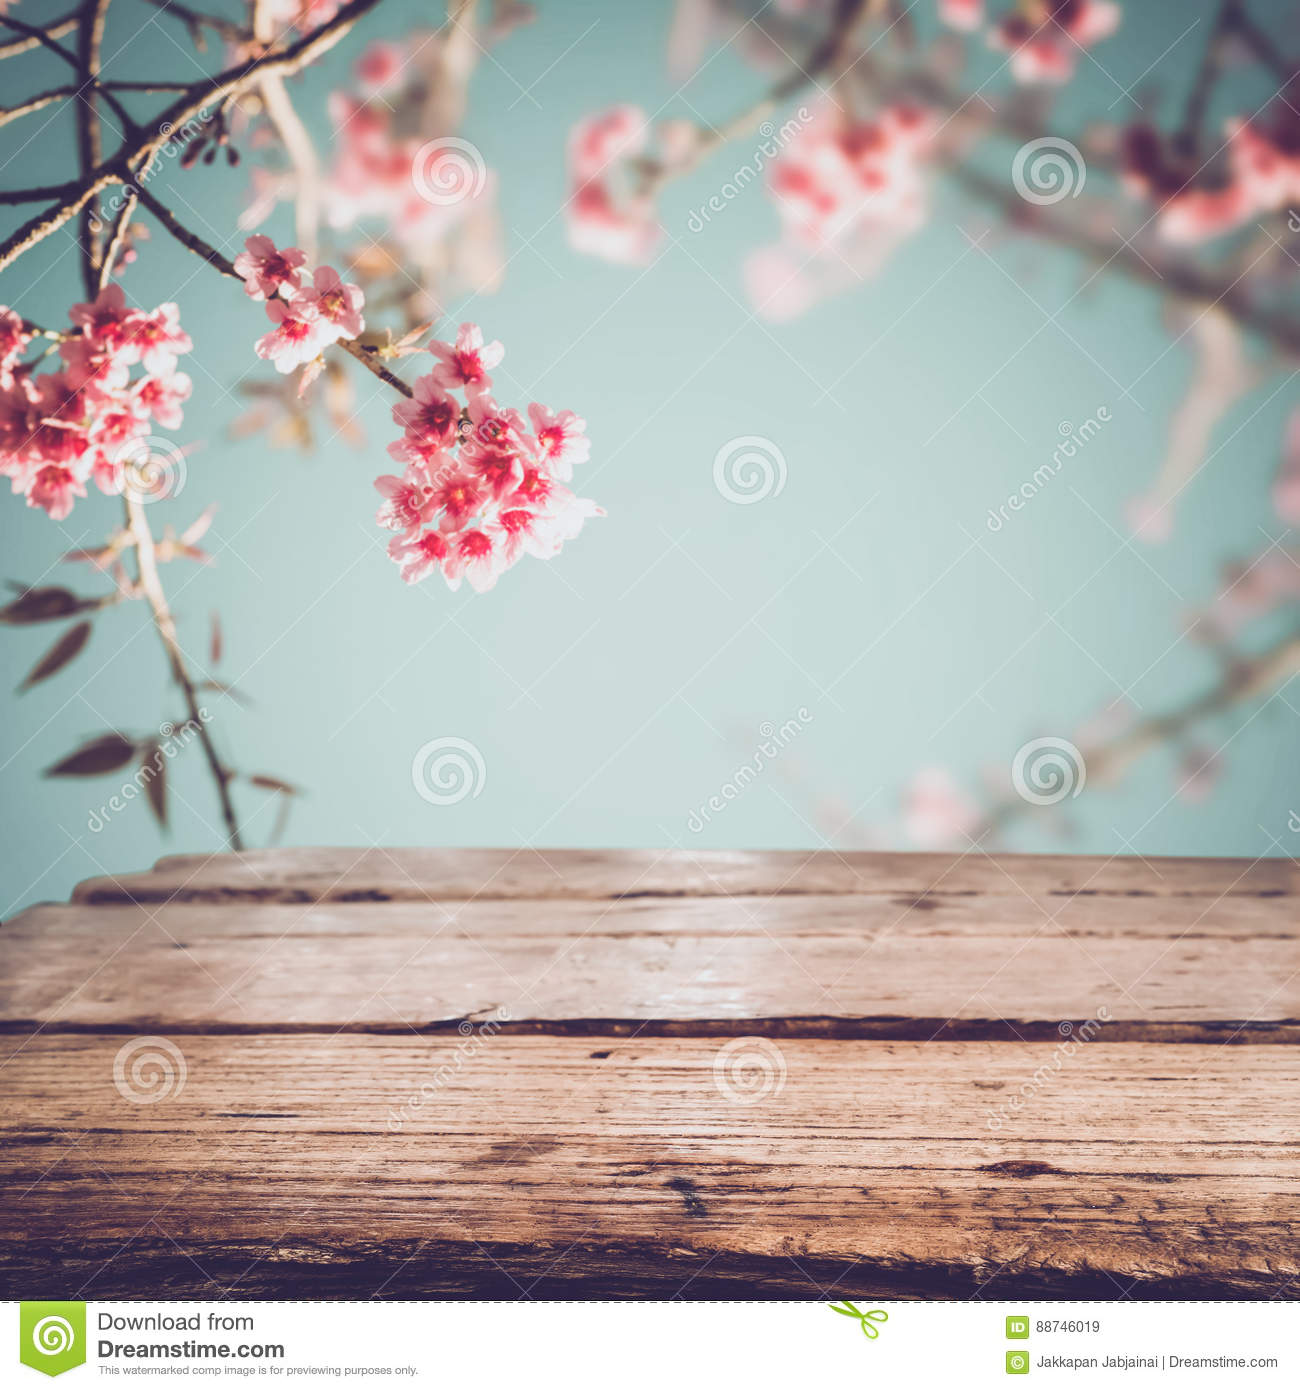 Wood Table Top On Blurred Beach Background Vintage Tone: Top Of Wood Table With Pink Cherry Blossom Flower Sakura